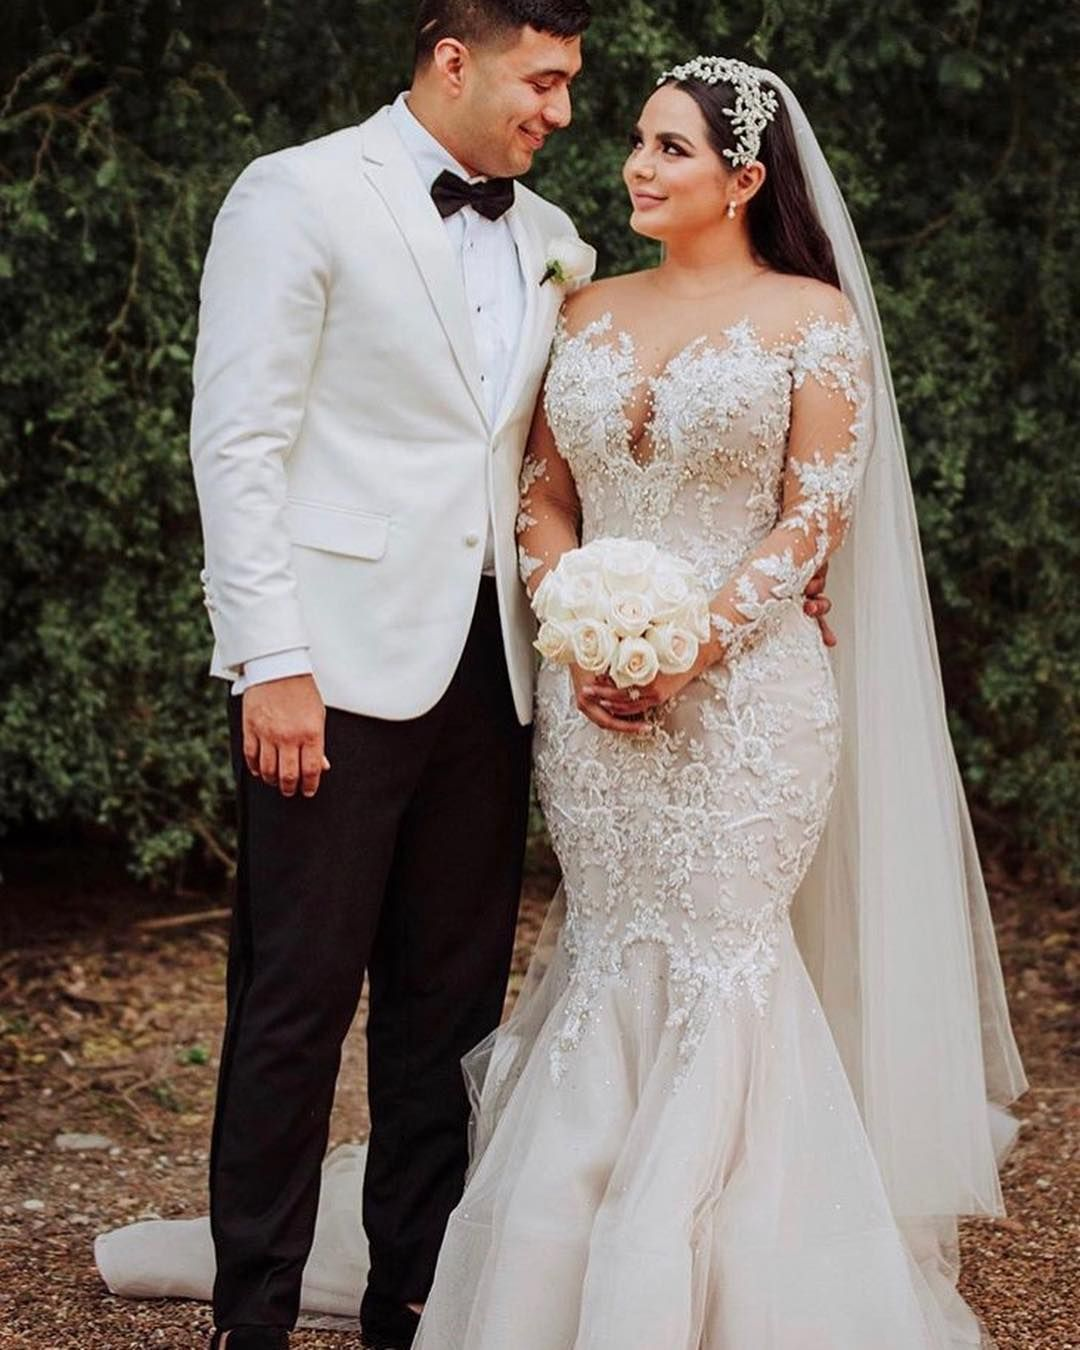 Haute Couture Bridal Gowns Can Be Costly For Brides On A Budget That Can Make Your Favorite We Plus Wedding Dresses Mermaid Wedding Dress Wedding Dresses